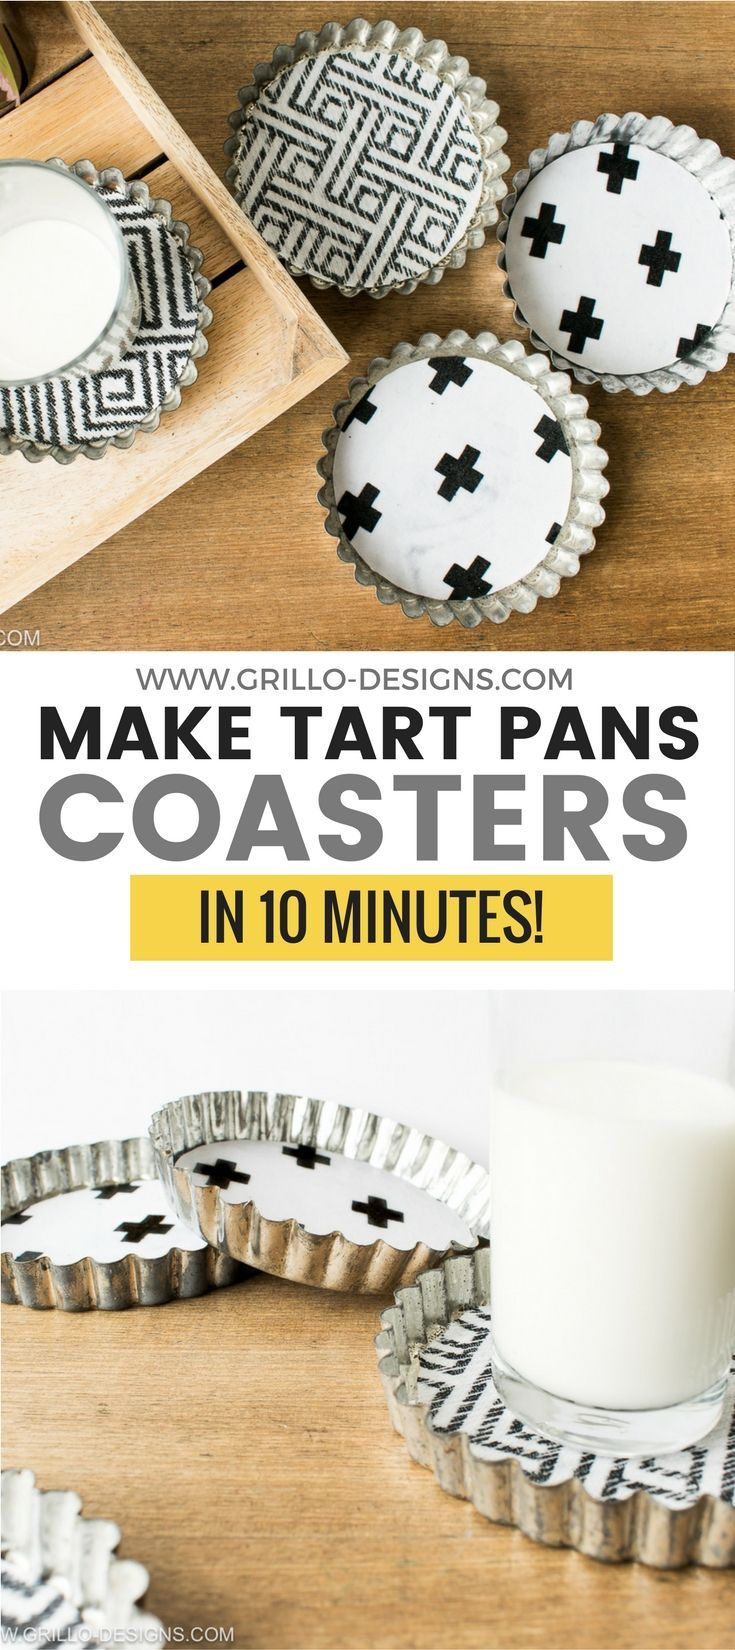 DIY coasters - learn how to make coasters for your cups by upcycling vintage style tart tins/pans.